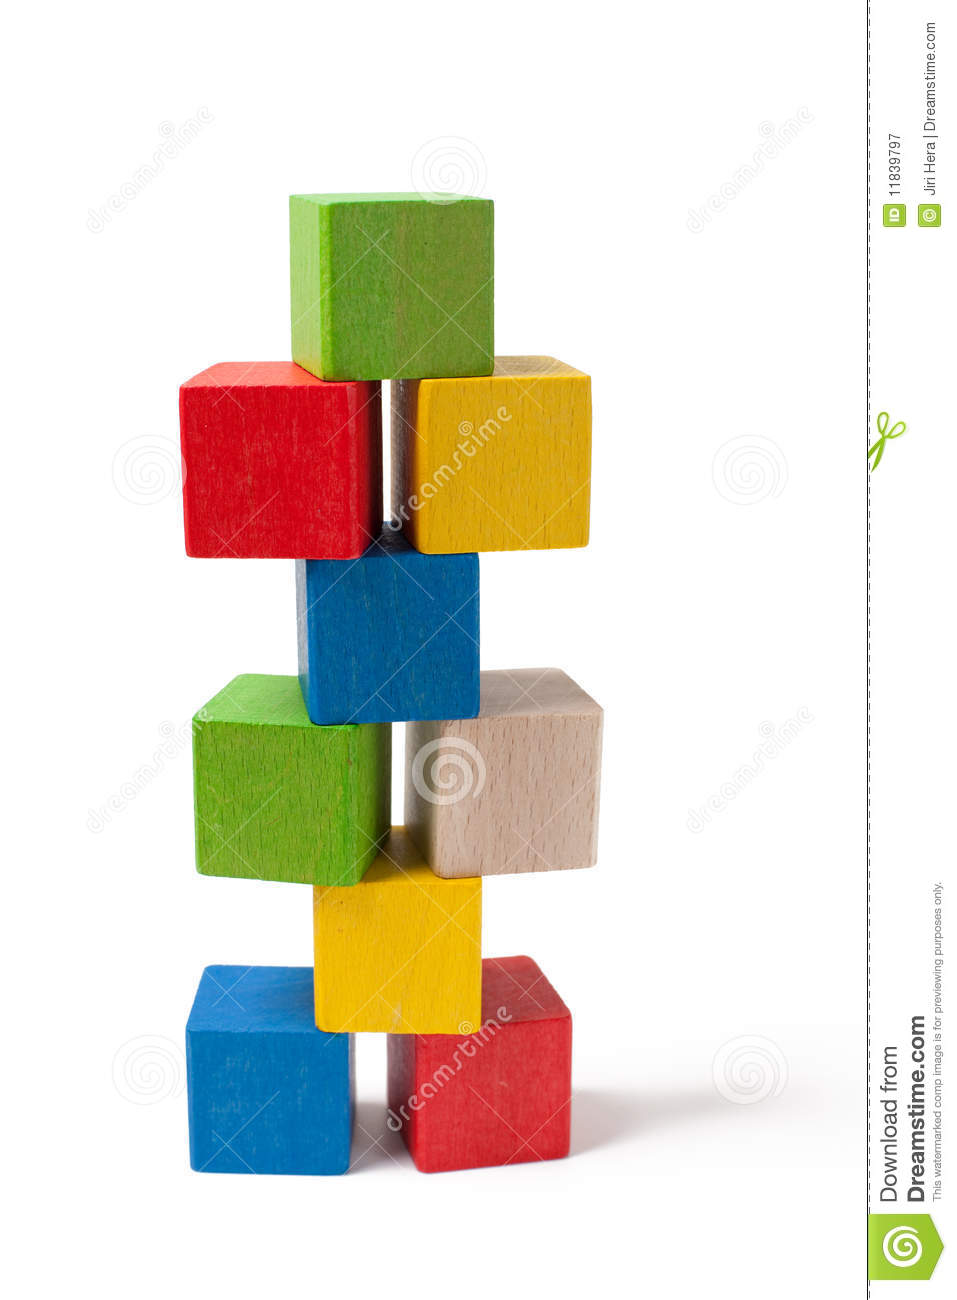 Pile Of Colorful Wooden Toy Blocks Royalty Free Stock Photography ...